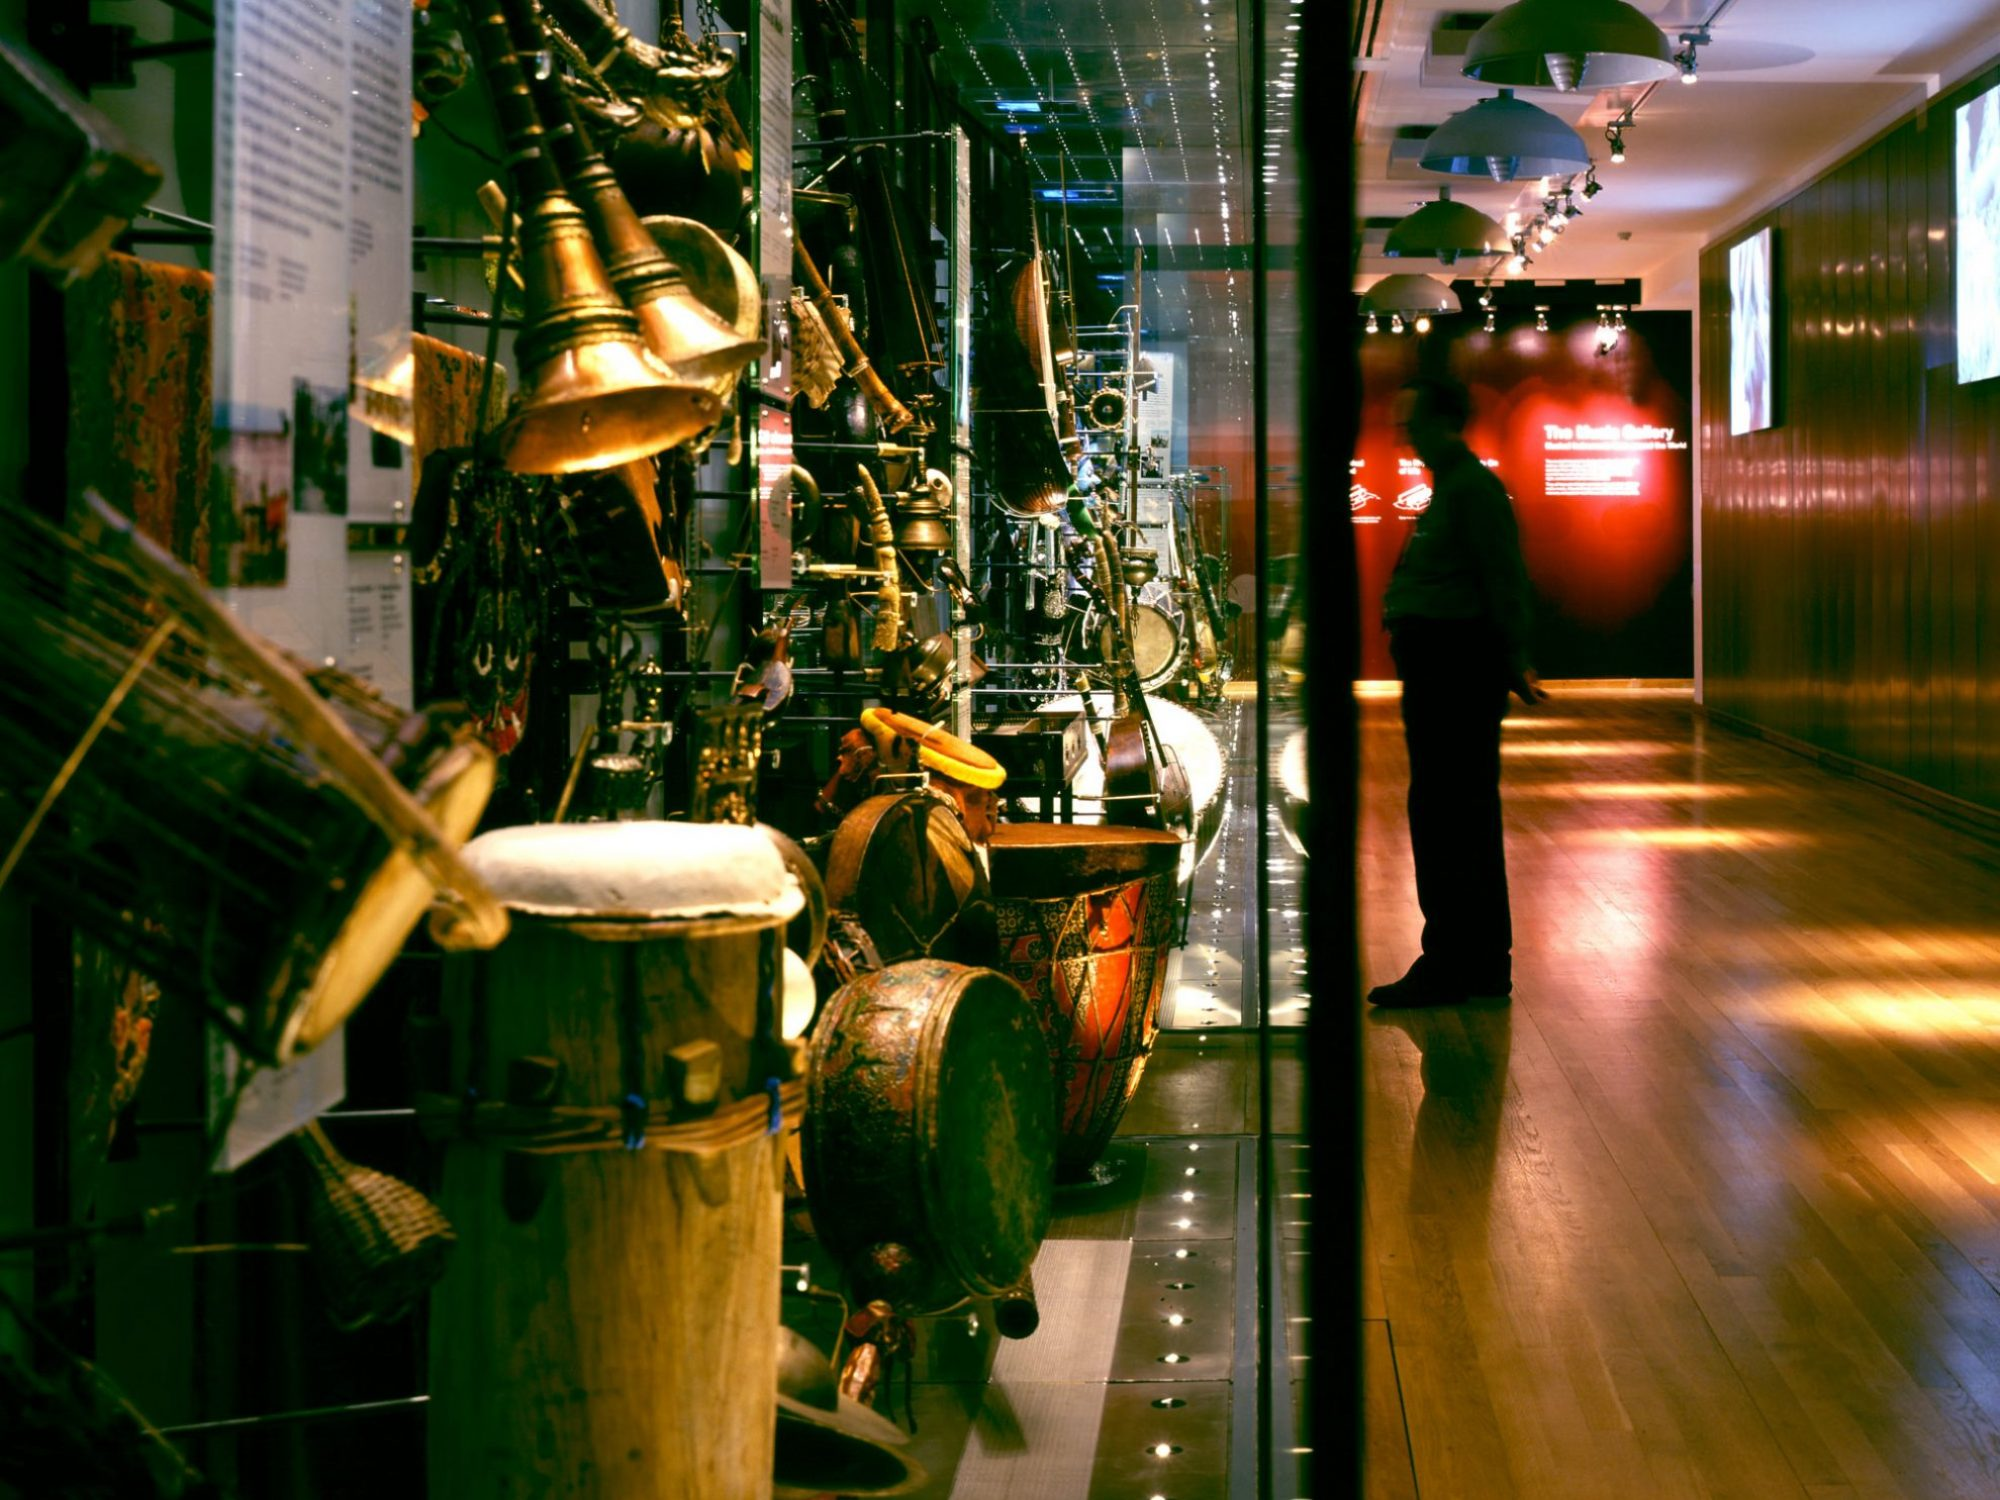 The shot shows the image divided into two. The left half of the image is the end of a display case full of intruments, and you can see drums and metal instruments. The right half is a stretch of gallery ending in a red wall. A man is standing in the distance, looking in at a case.